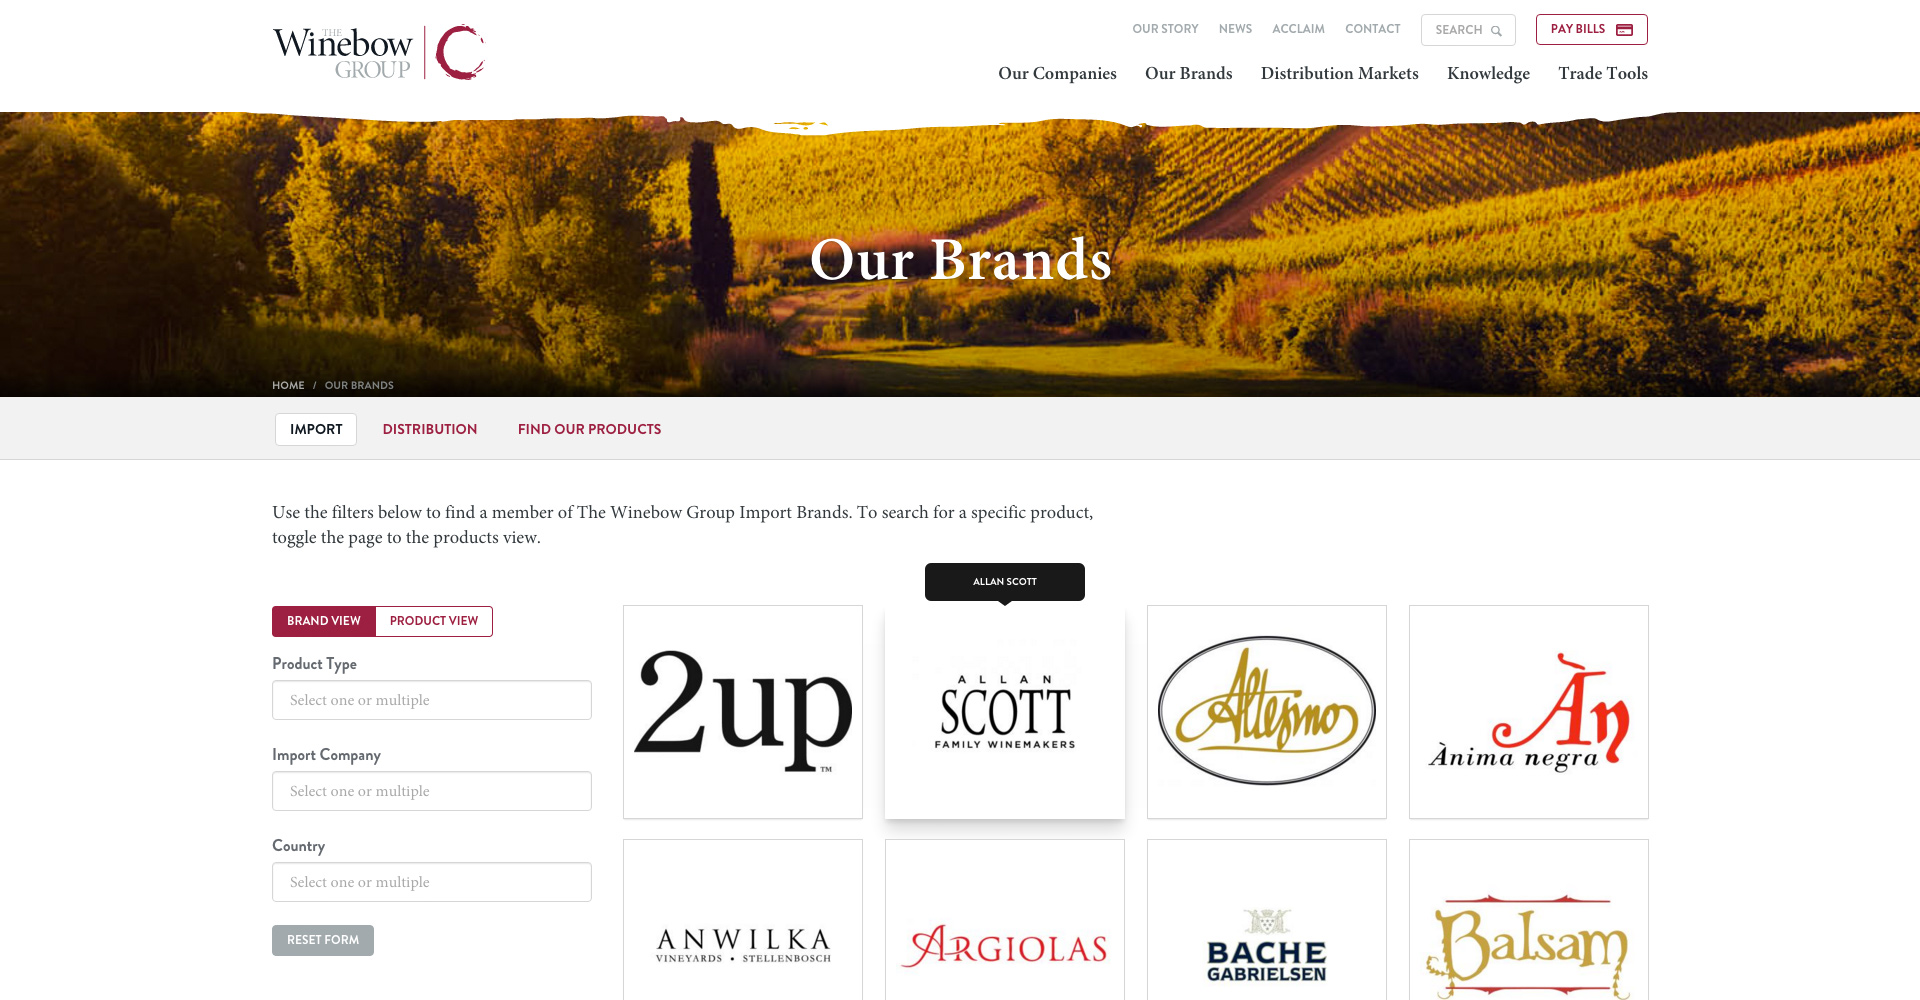 the winebow group brands page